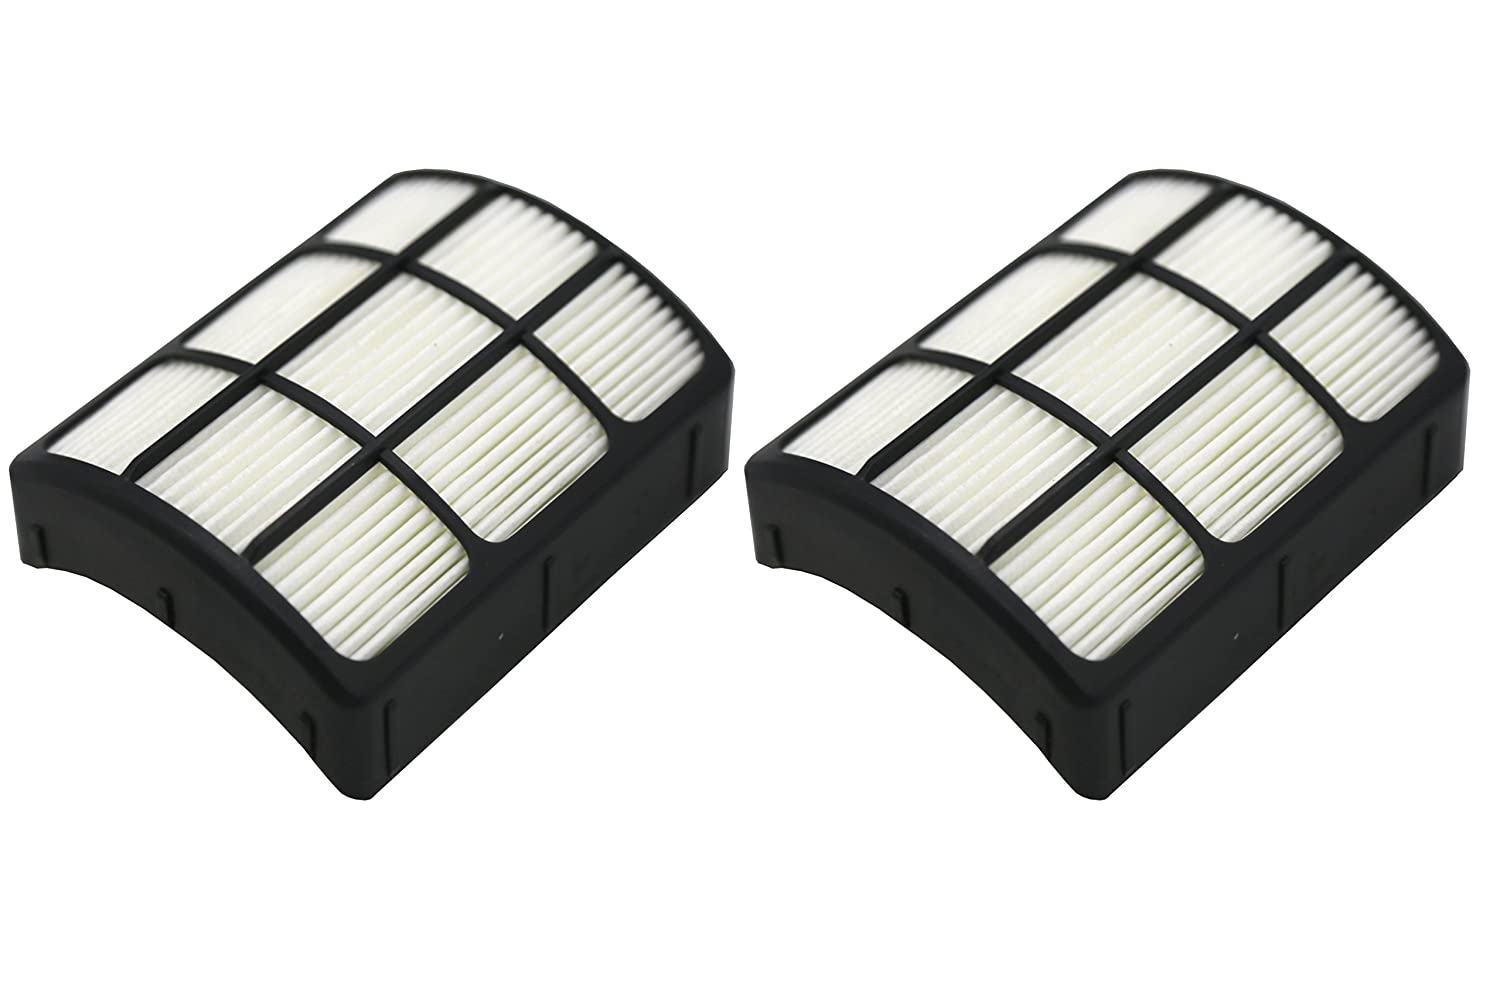 Green Label 2 Pack Replacement HEPA Filter F86 for Dirt Devil Vacuum Cleaners (Compares to 440006419)